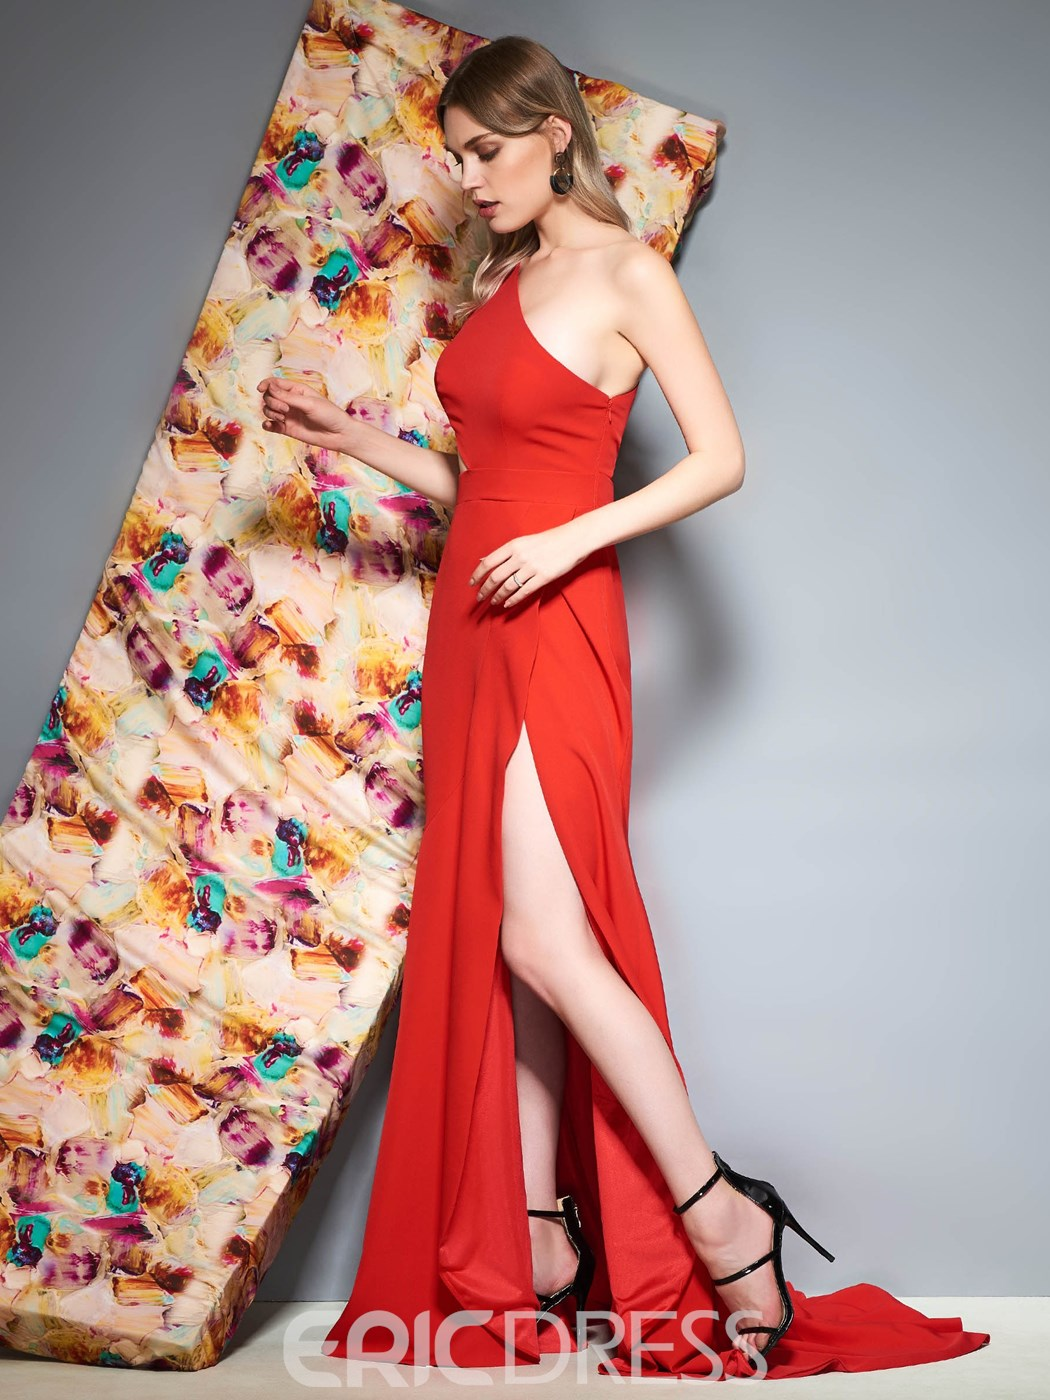 Ericdress One Shoulder Mermaid Red Prom Dress